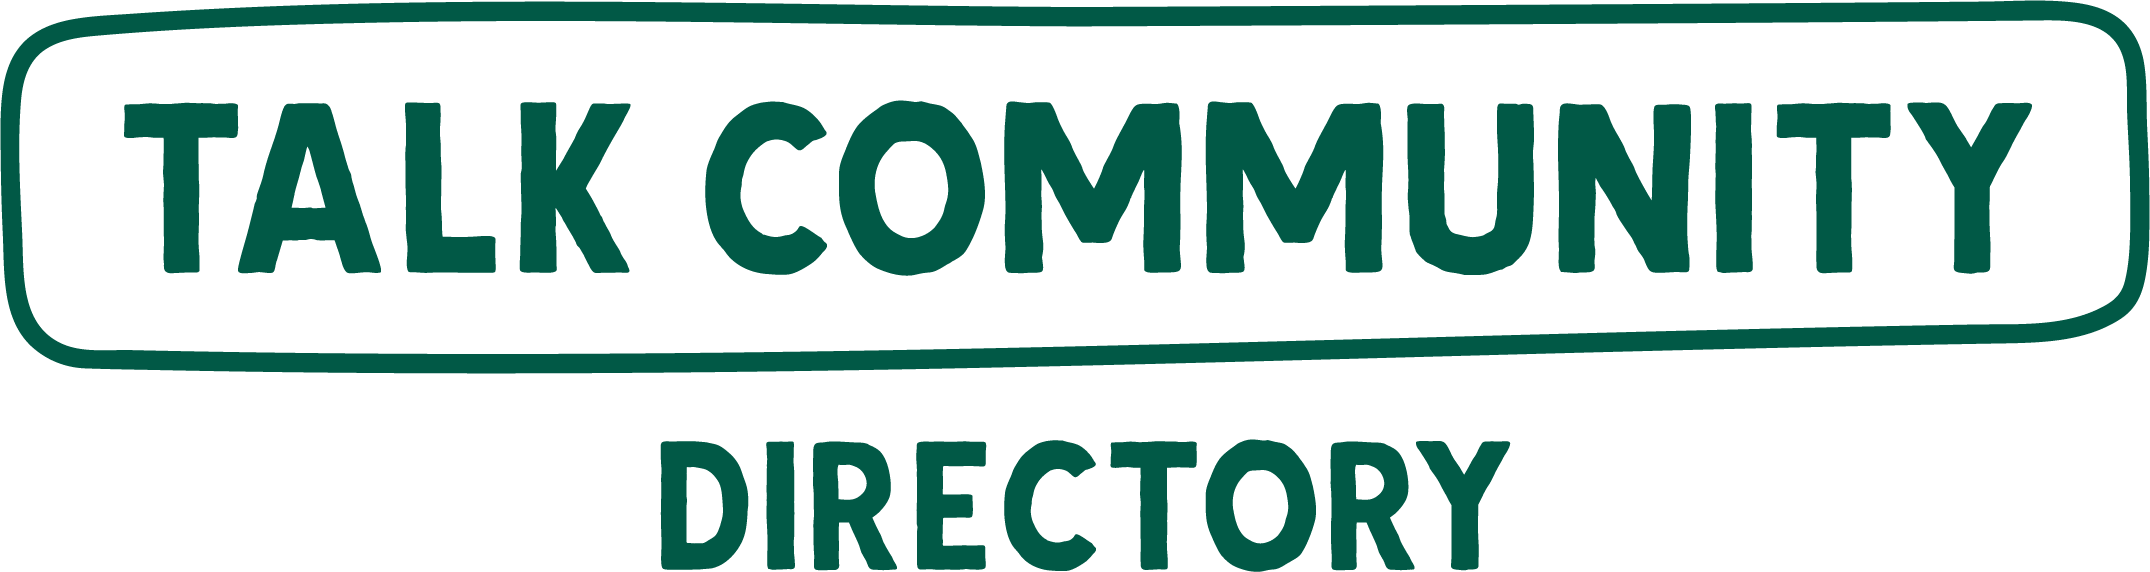 Talk Community Directory logo